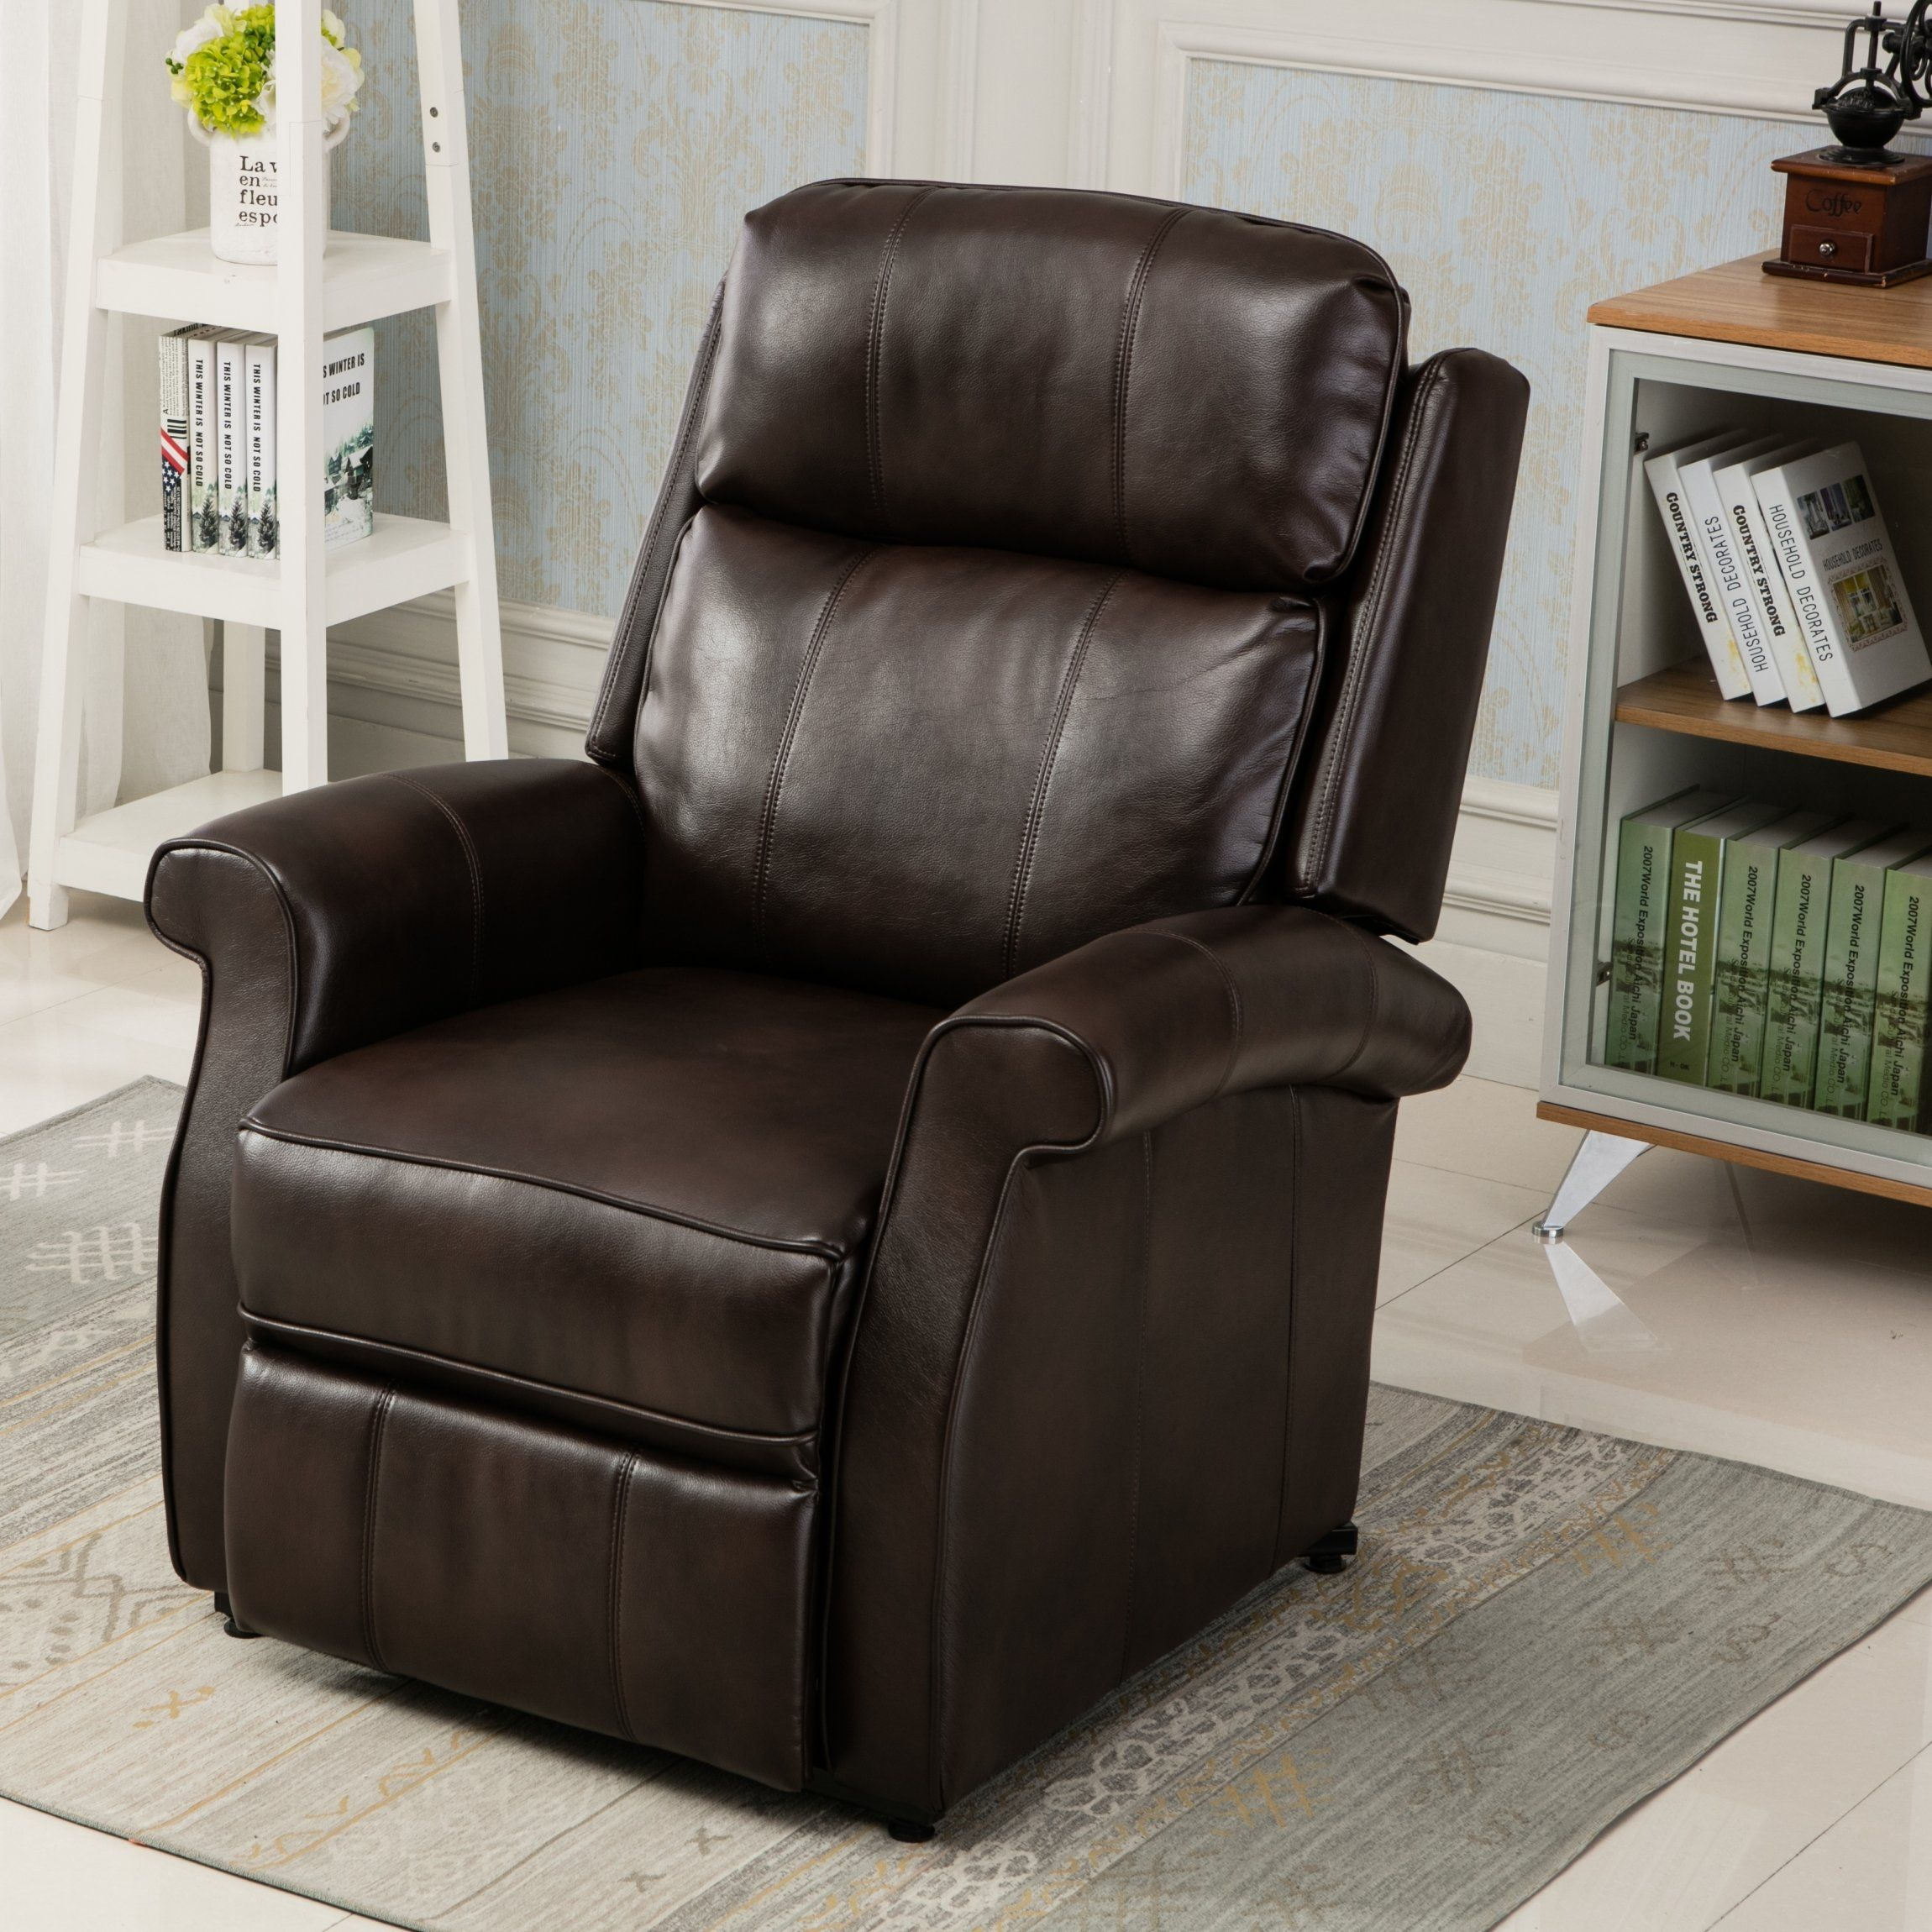 Park Art My WordPress Blog_Leather Lift Chair For Sale